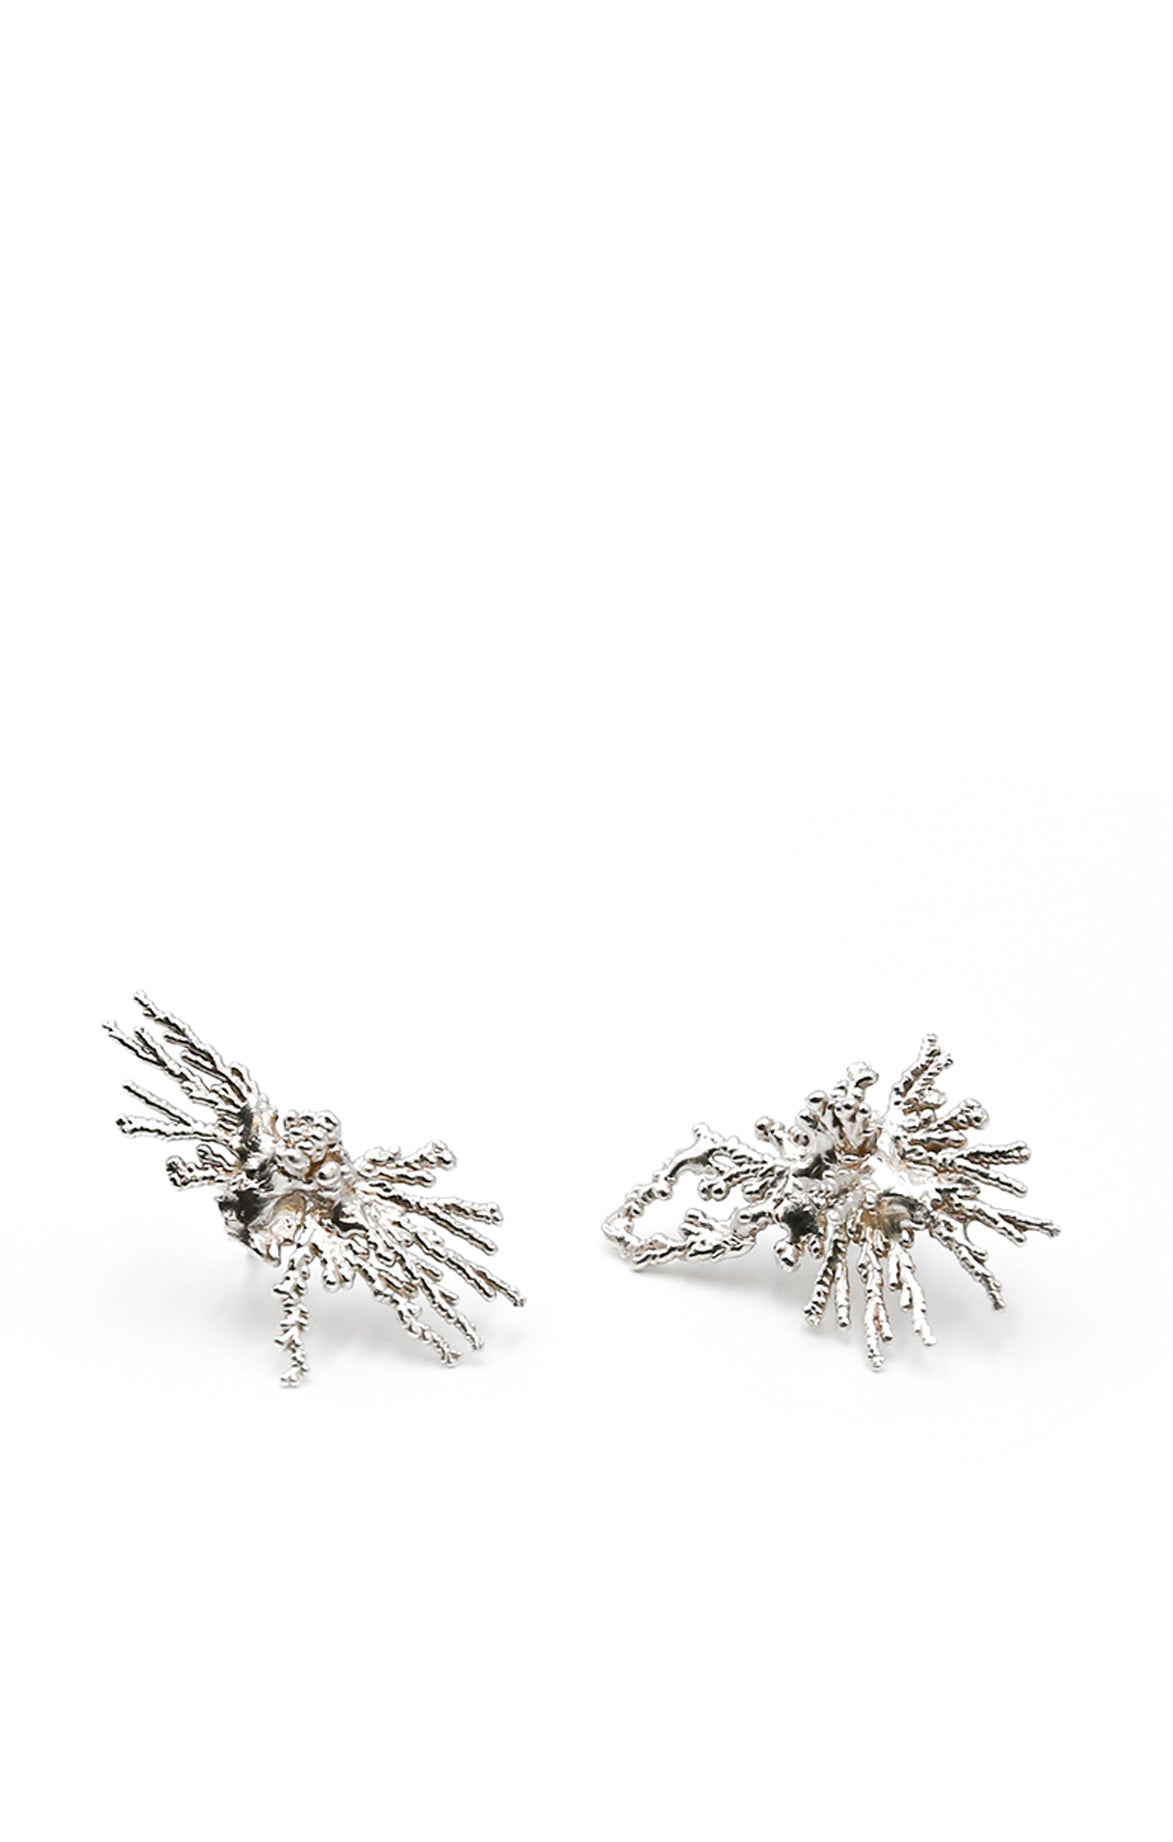 Acropora Coral Silver Earrings